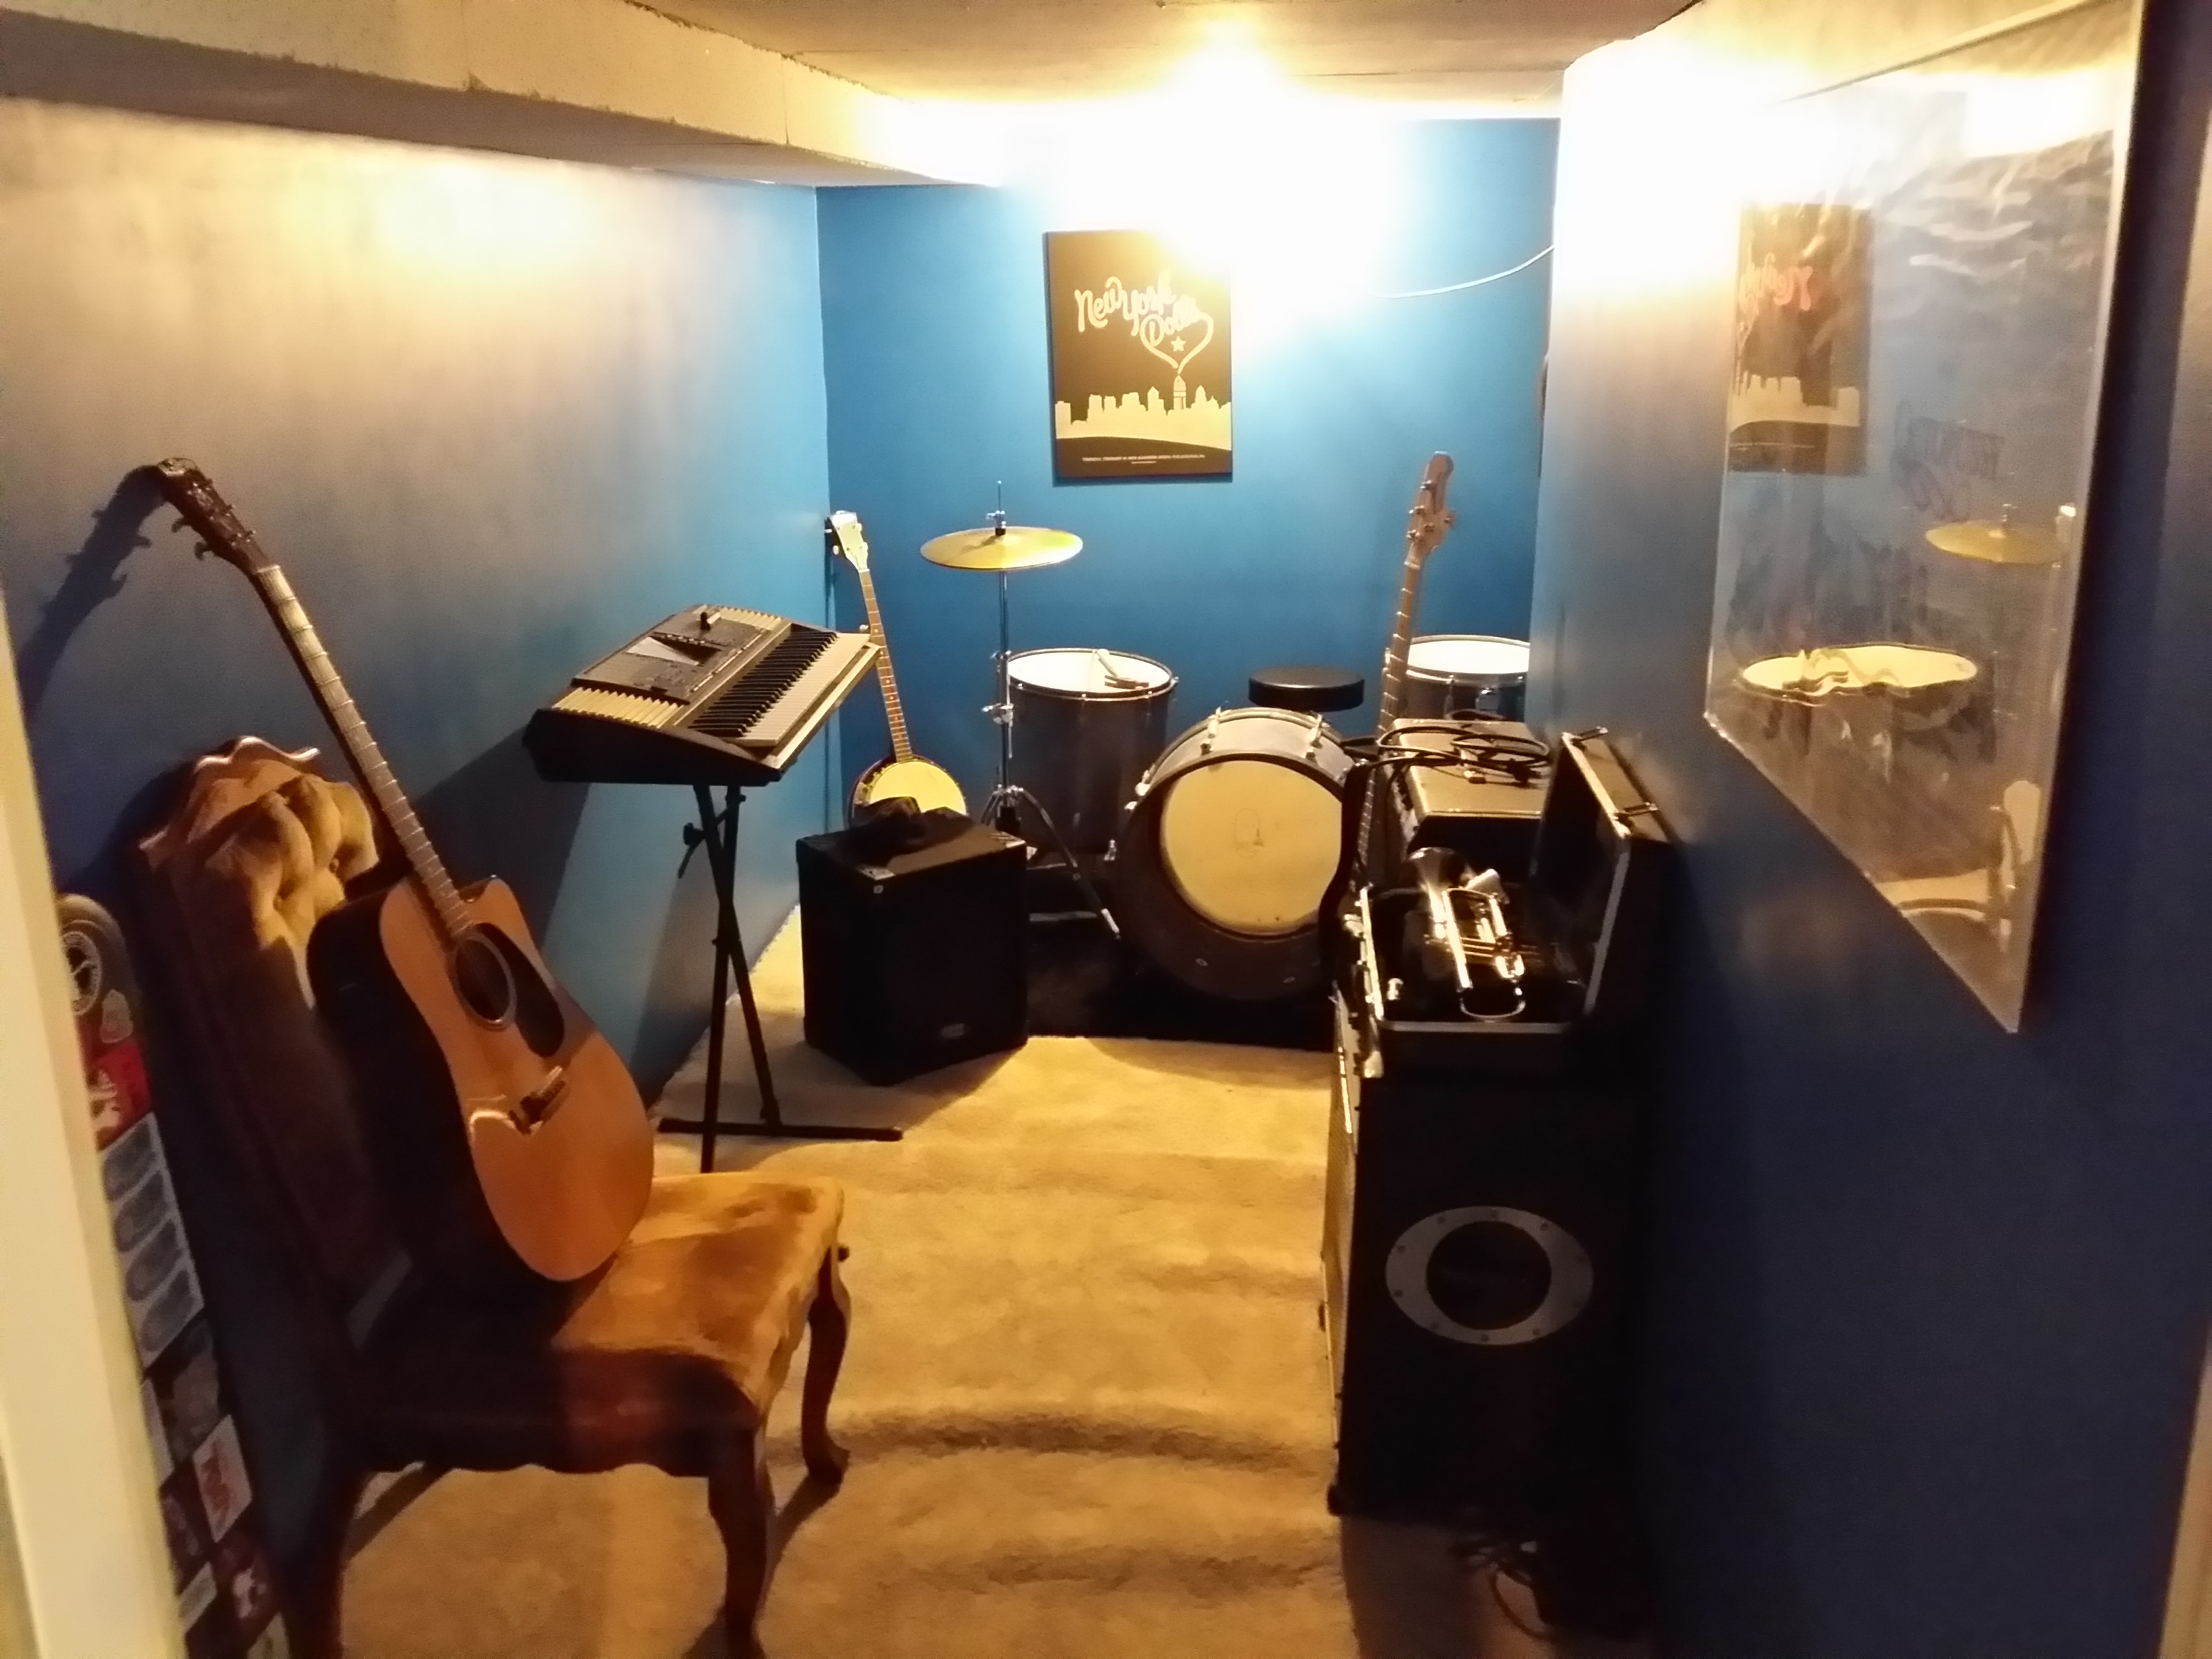 Amazing How To Build Your Own Soundproof Rehearsal Room When You Have No Largest Home Design Picture Inspirations Pitcheantrous